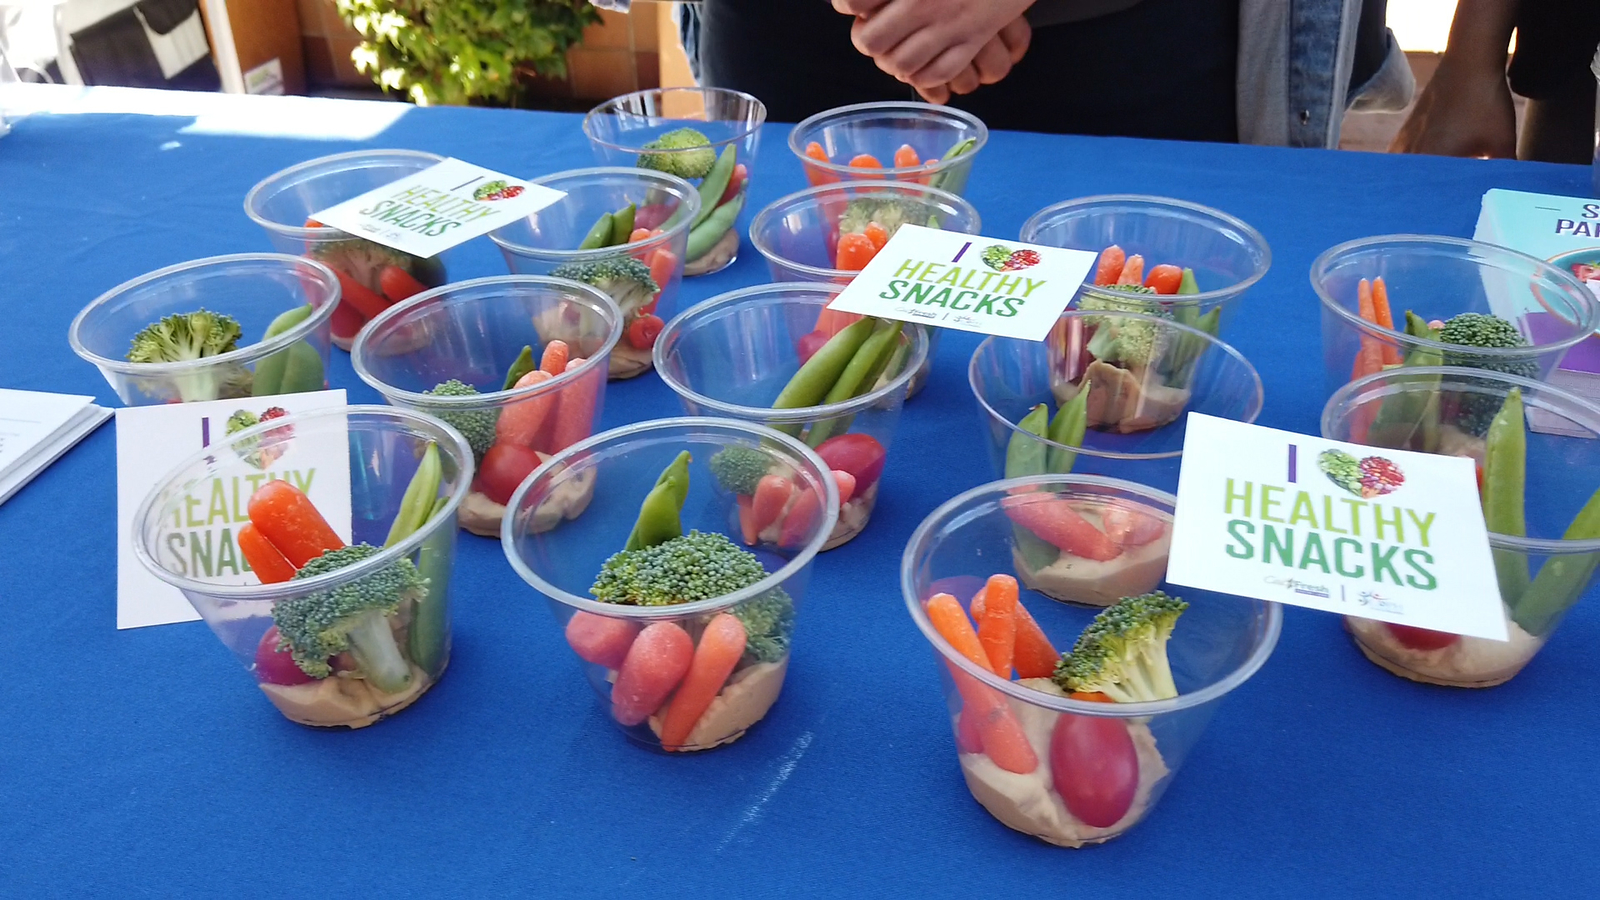 Healthy Snacks and free produce offered at SFV health clinics